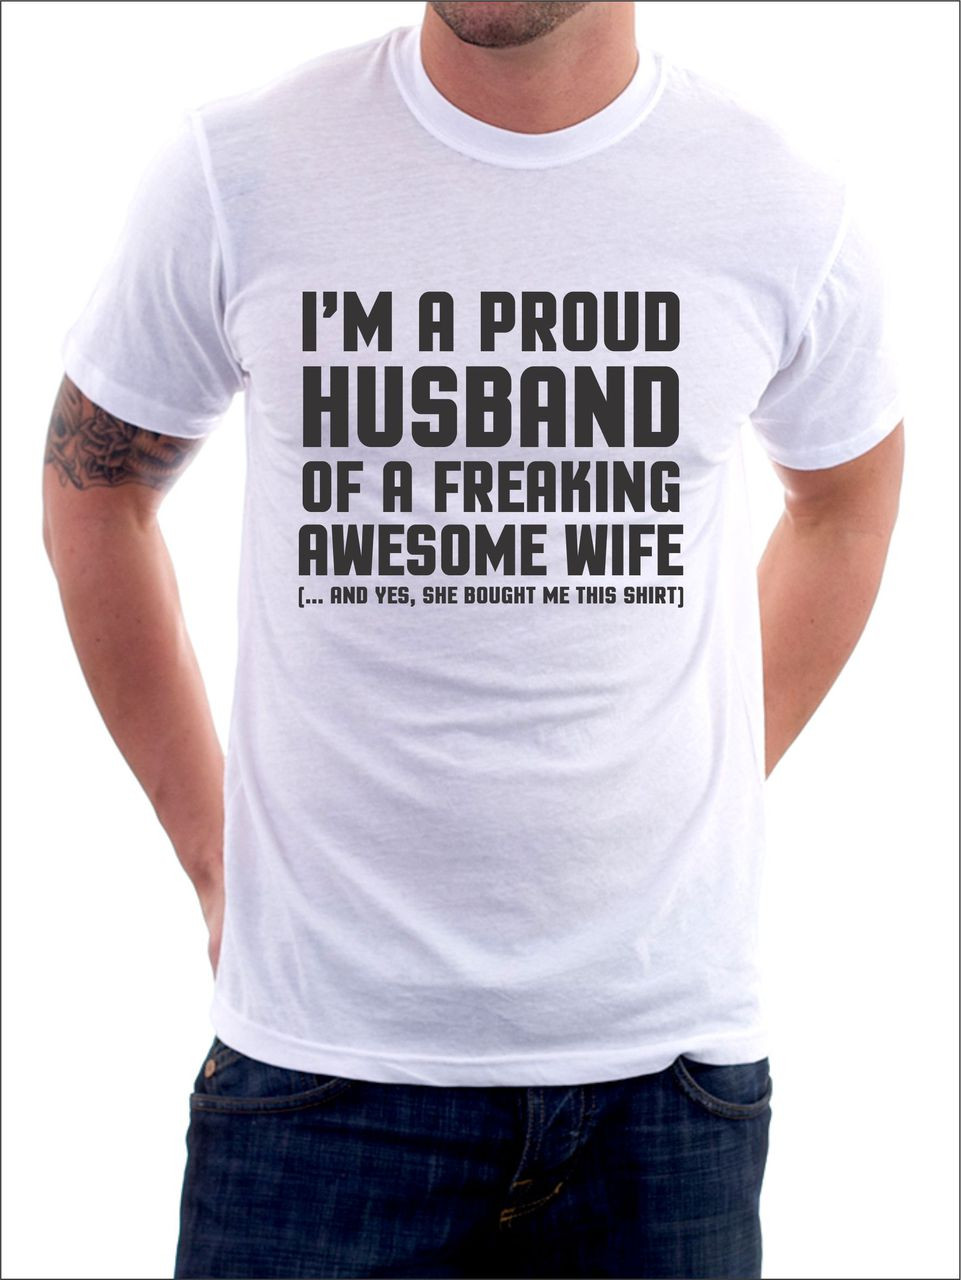 e3523f1d I'm a proud husband of a freaking awesome wife T-Shirt. Loading zoom